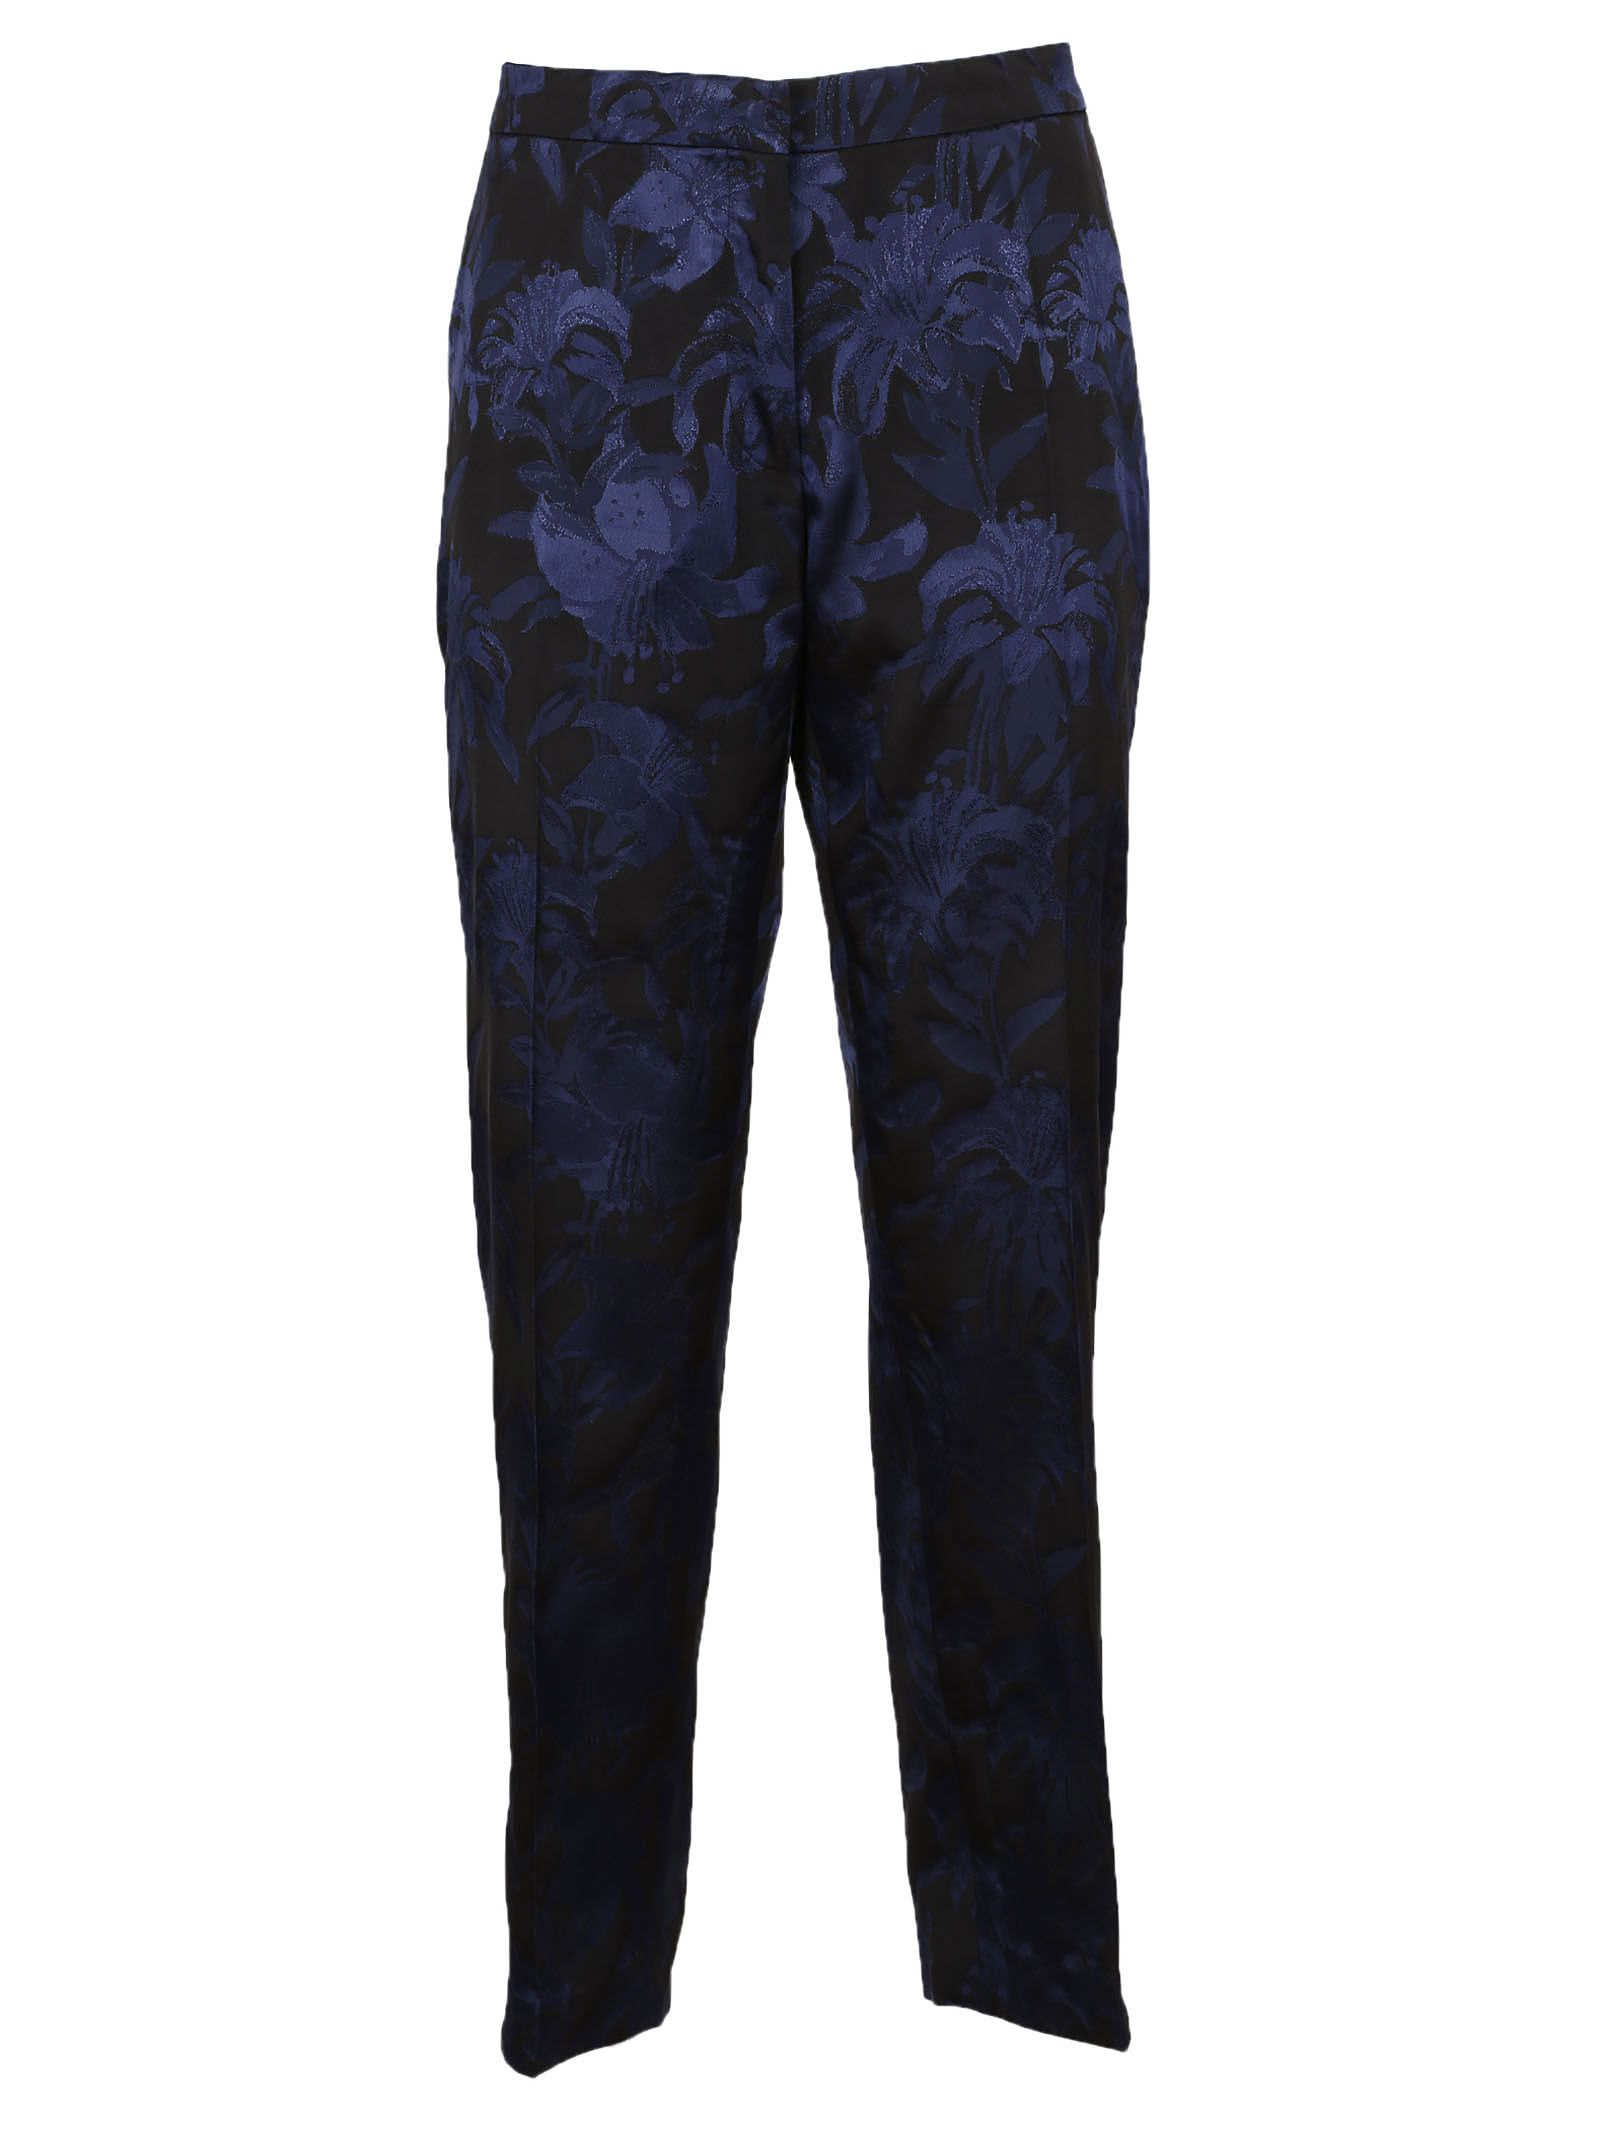 Dries Van Noten Floral Patterned Trousers